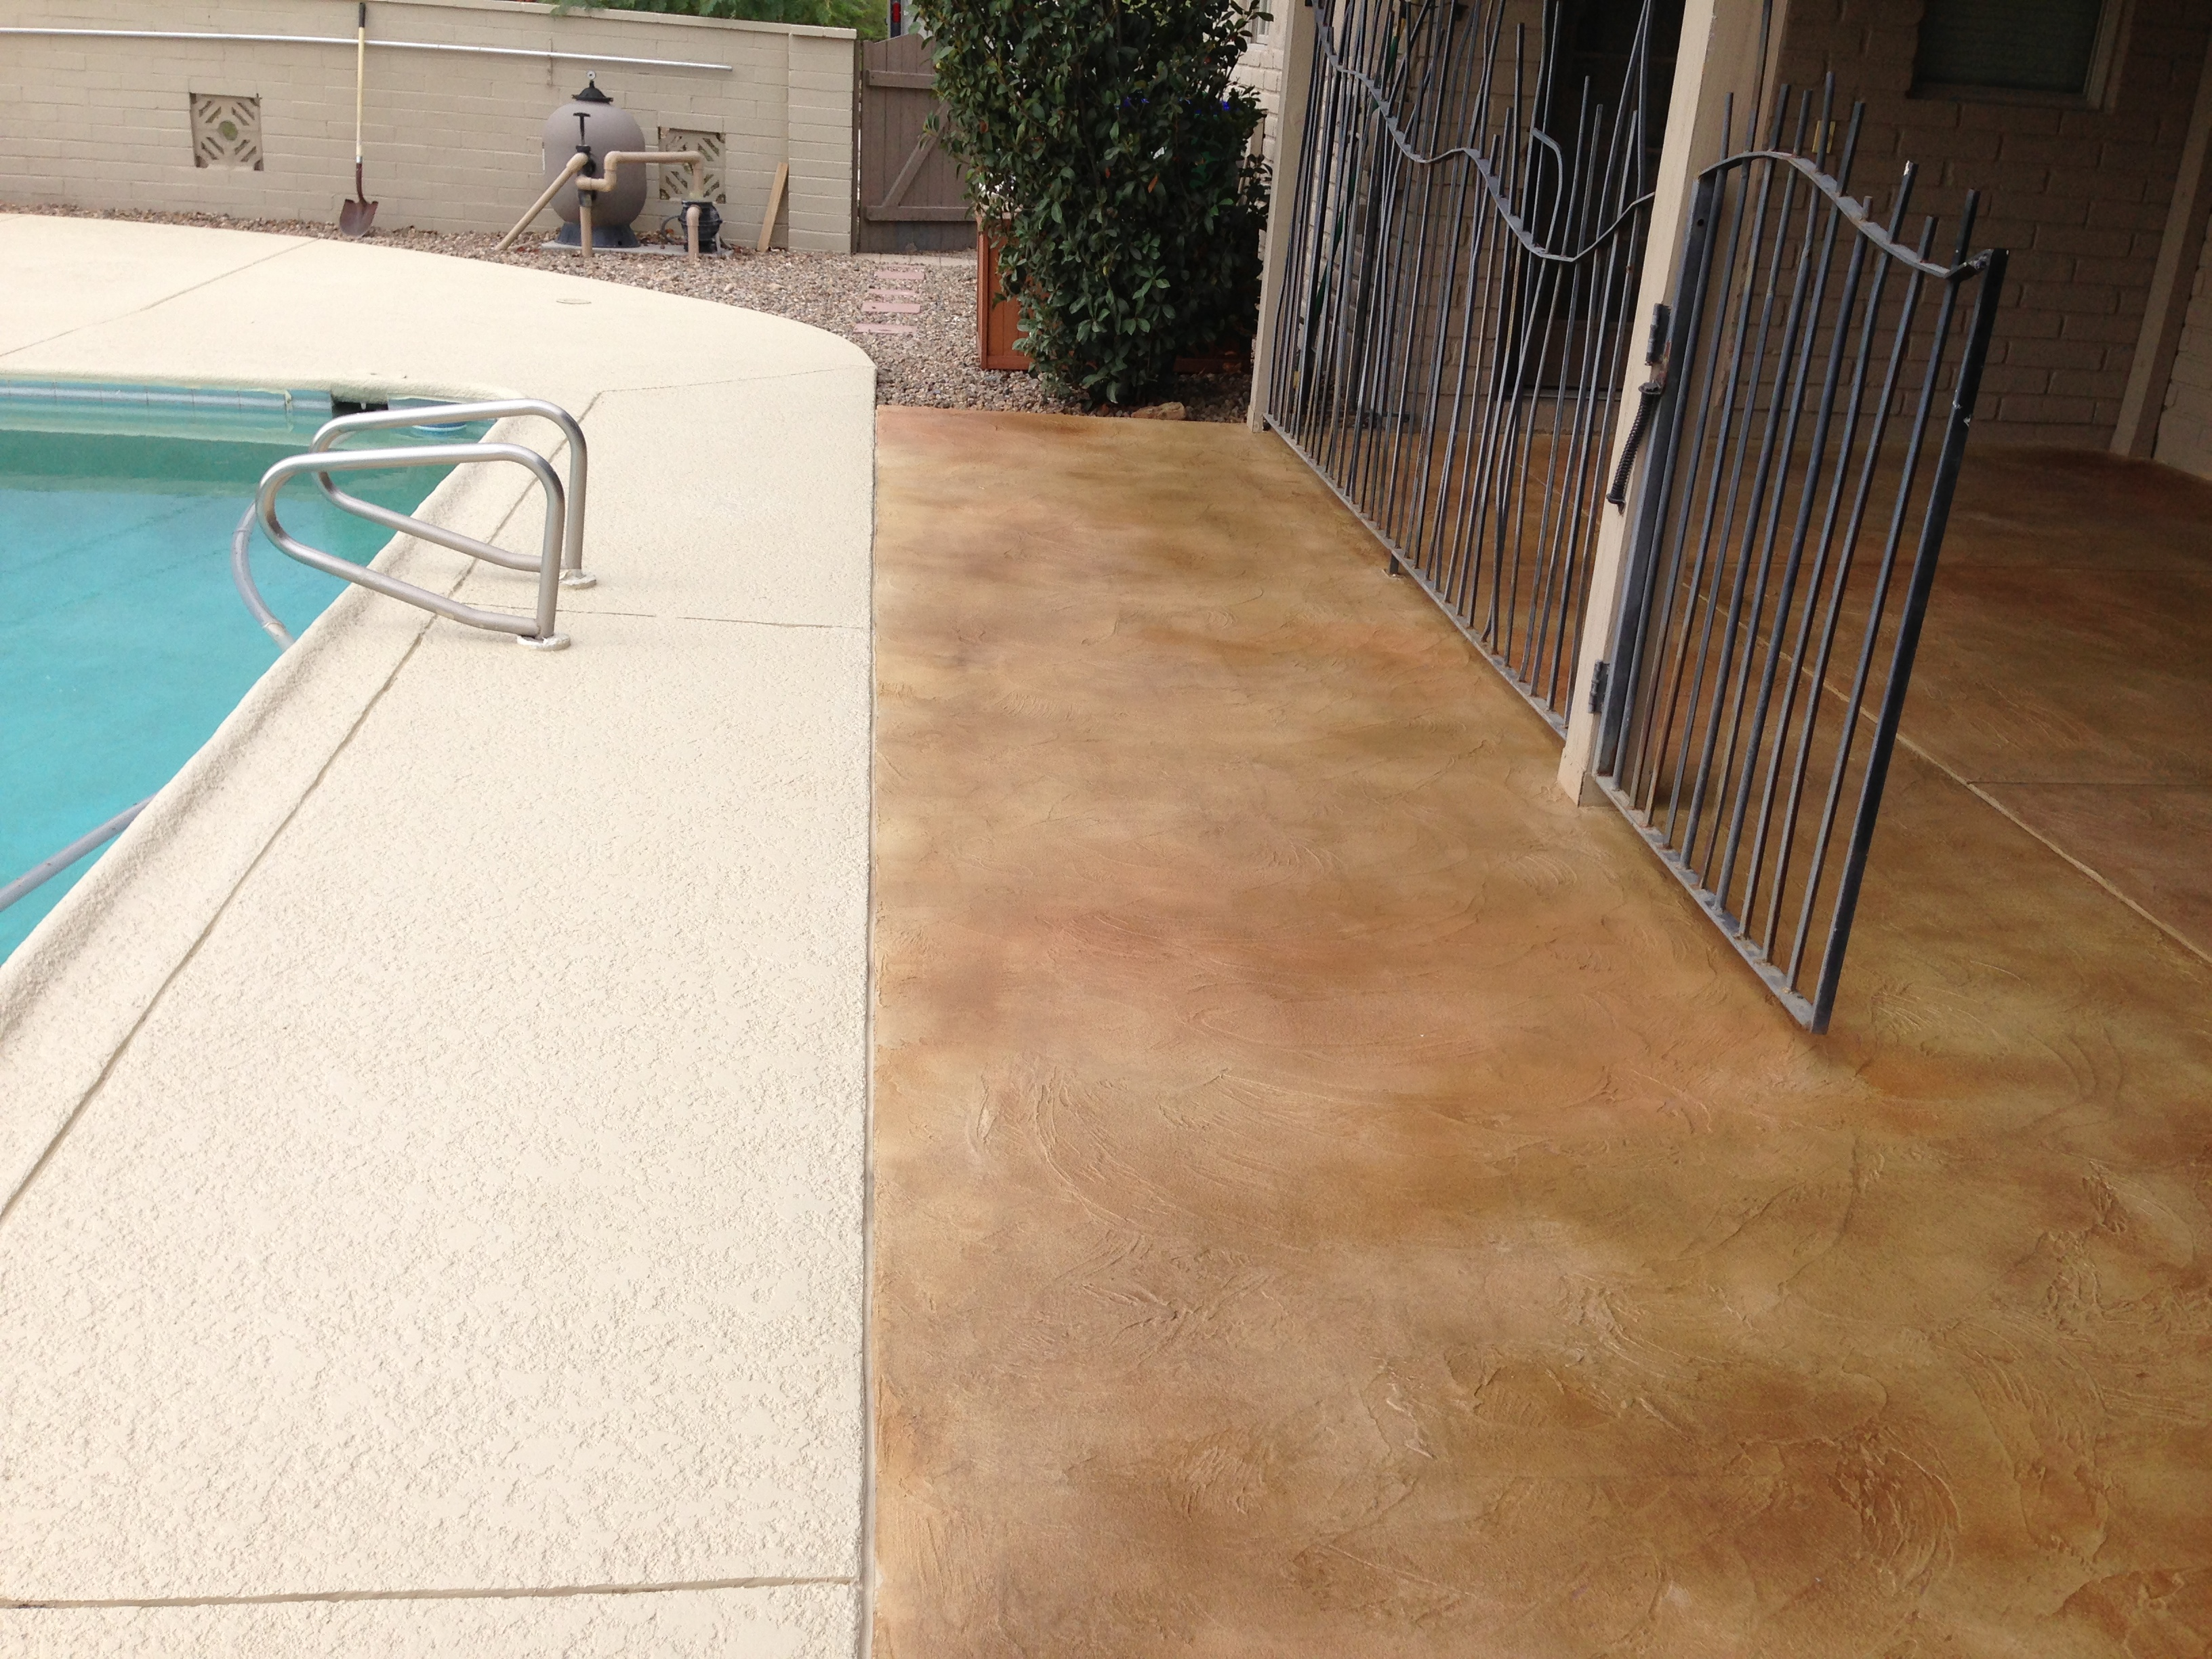 Stained Concrete Patio Overlay Installation and Pool Deck ... on Pool Deck Patio Ideas  id=88168